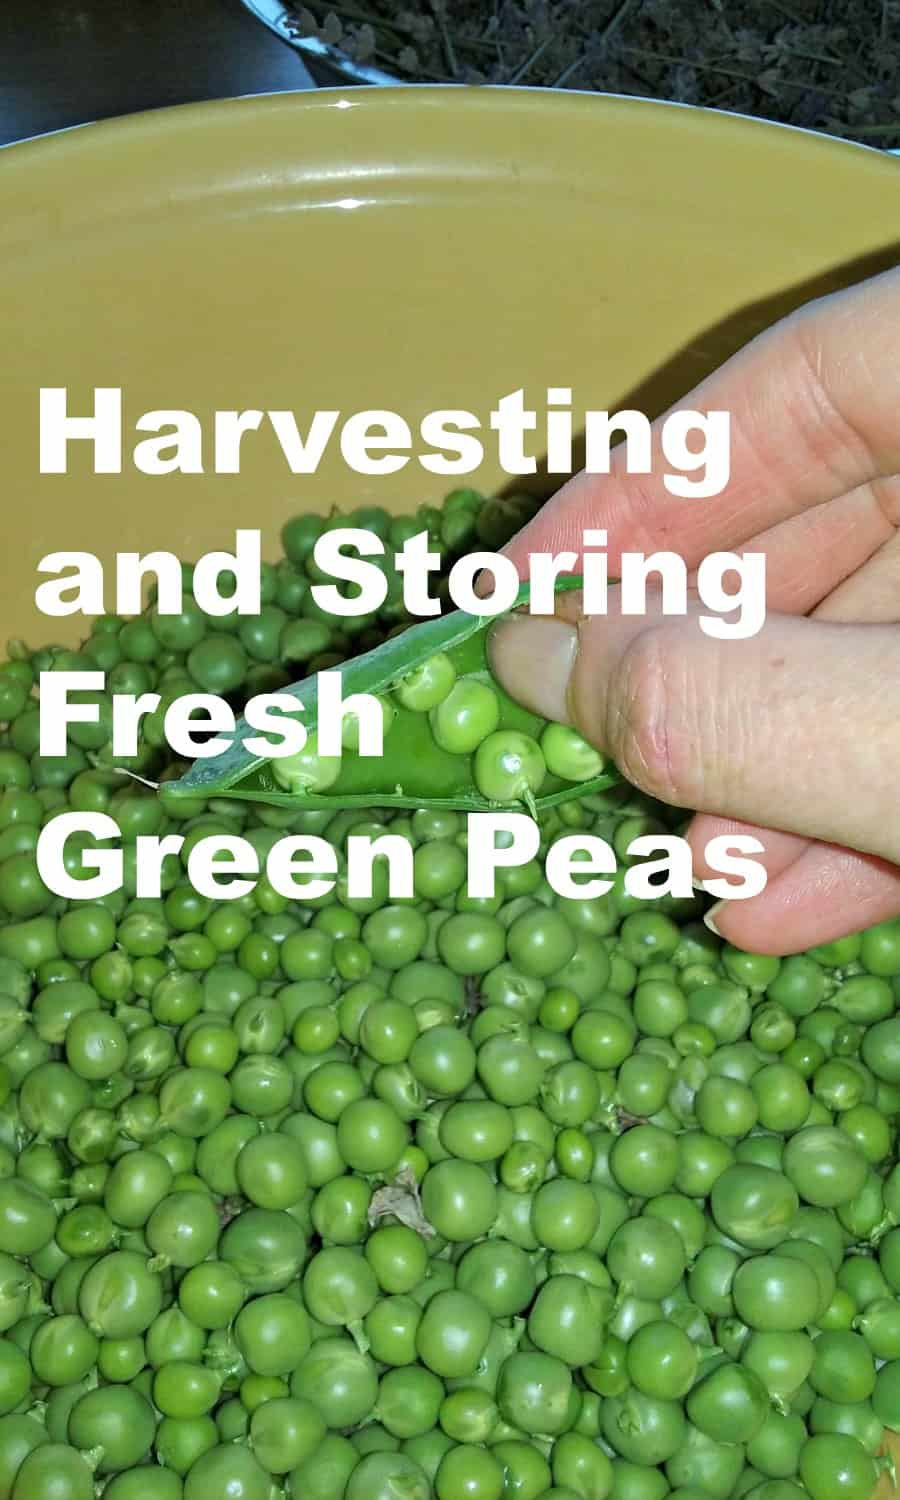 Harvesting and Storing Fresh Green Peas